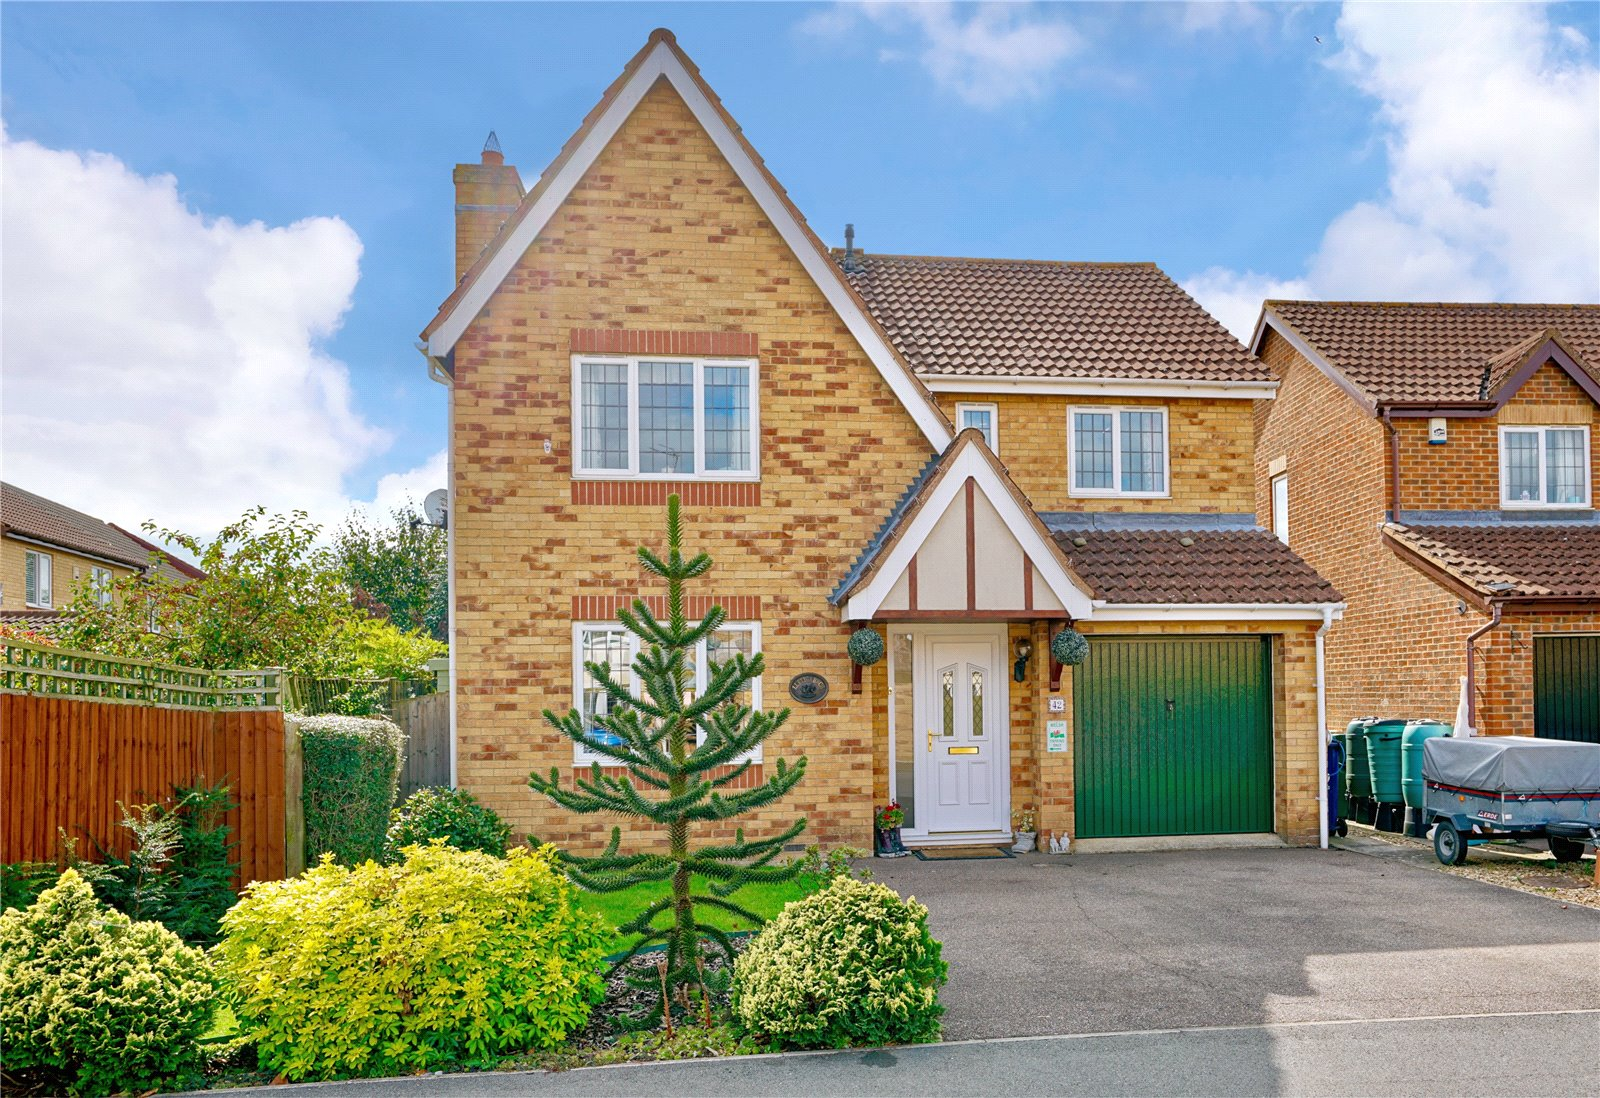 4 bed house for sale in St. Neots, Hawkesford Way, PE19 1LR  - Property Image 1